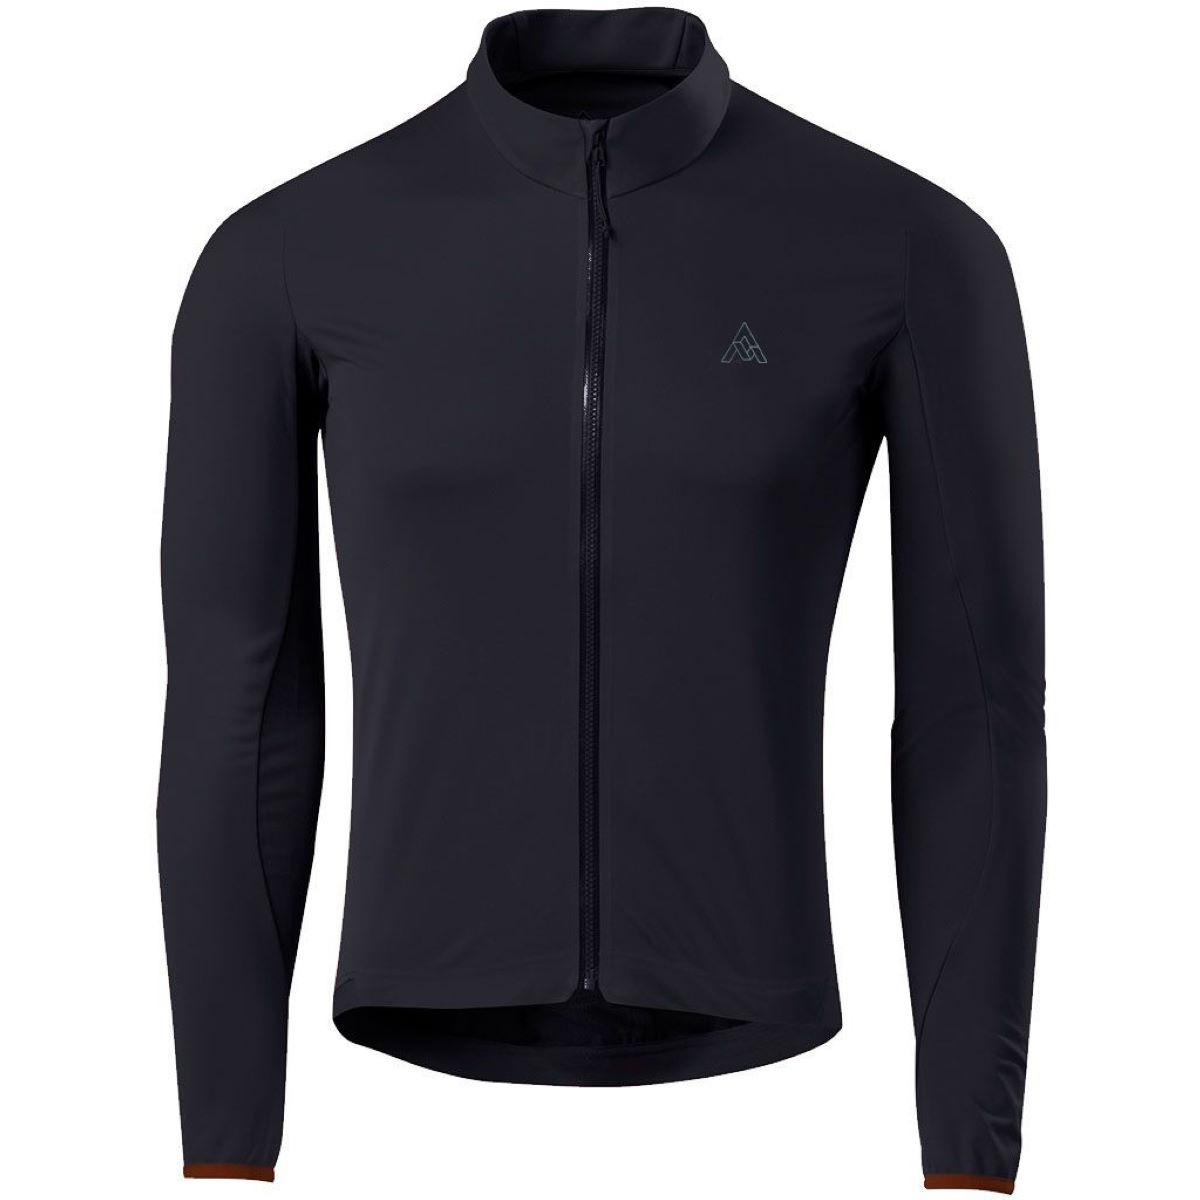 Maillot 7Mesh Synergy Windstopper (manches longues) - XL Noir